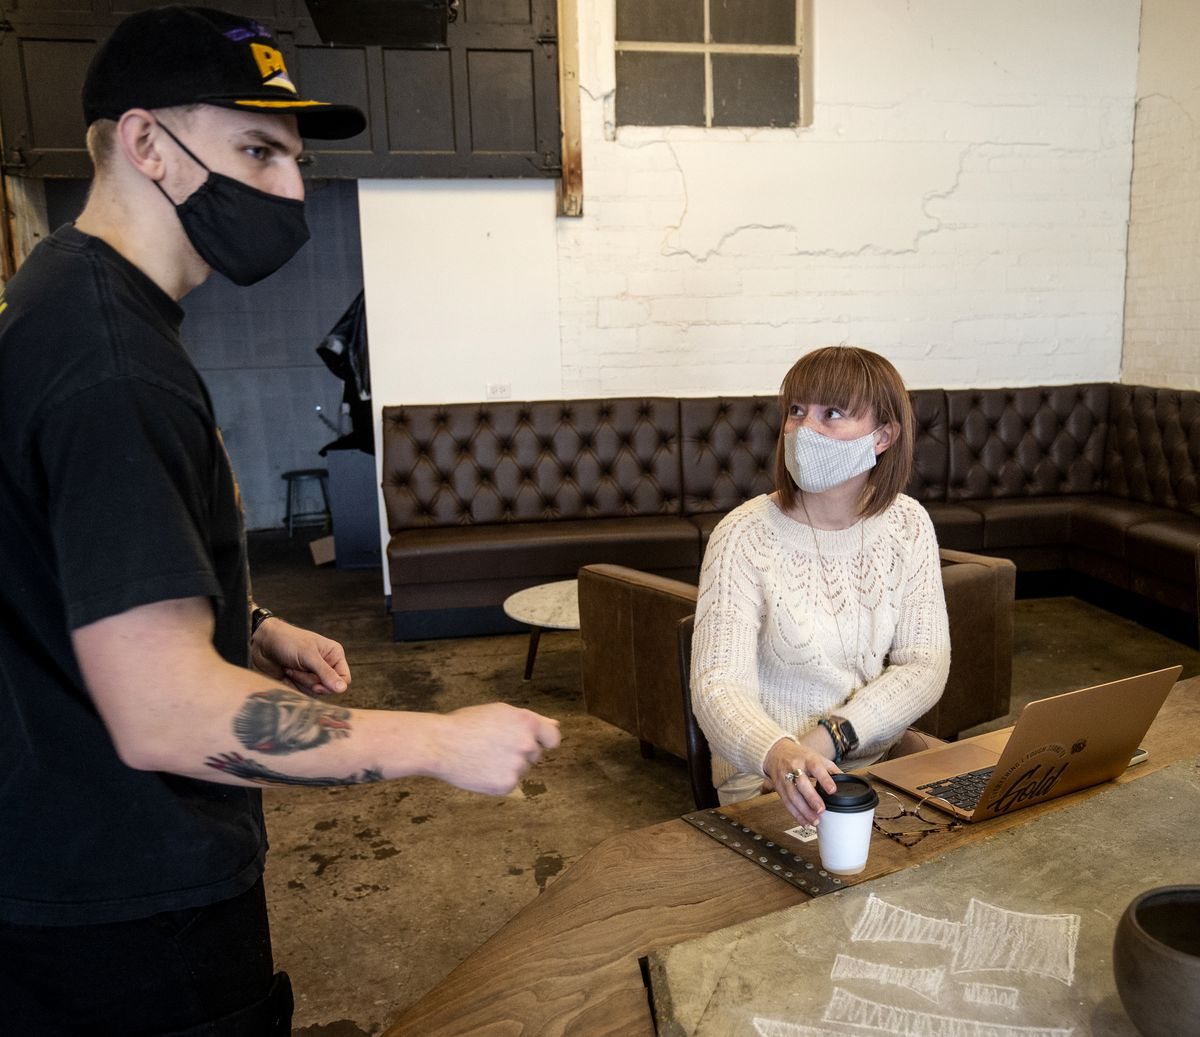 Nick Smith, a barista at Cirque Coffee, chats with Bri Seely at the shop in the Pearl District just outside of downtown Tulsa, Okla., on Jan. 9, 2021. Seely moved to Tulsa as part of the George Kaiser Family Foundation's Tulsa Remote.